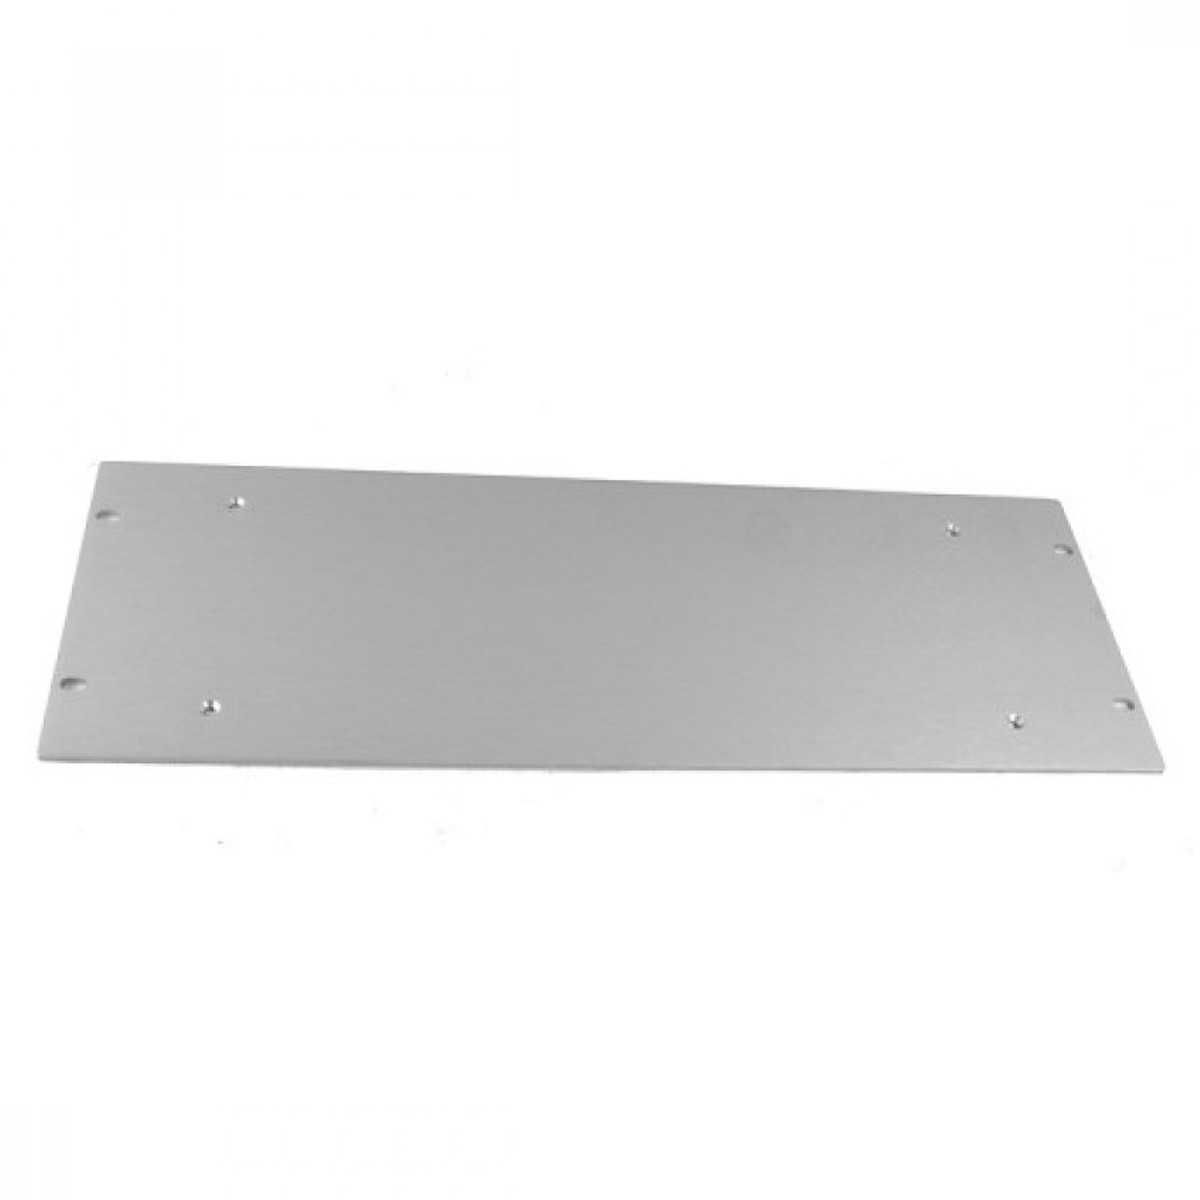 HIFI 2000 Front Panel Aluminum 4mm Silver for 4U Case